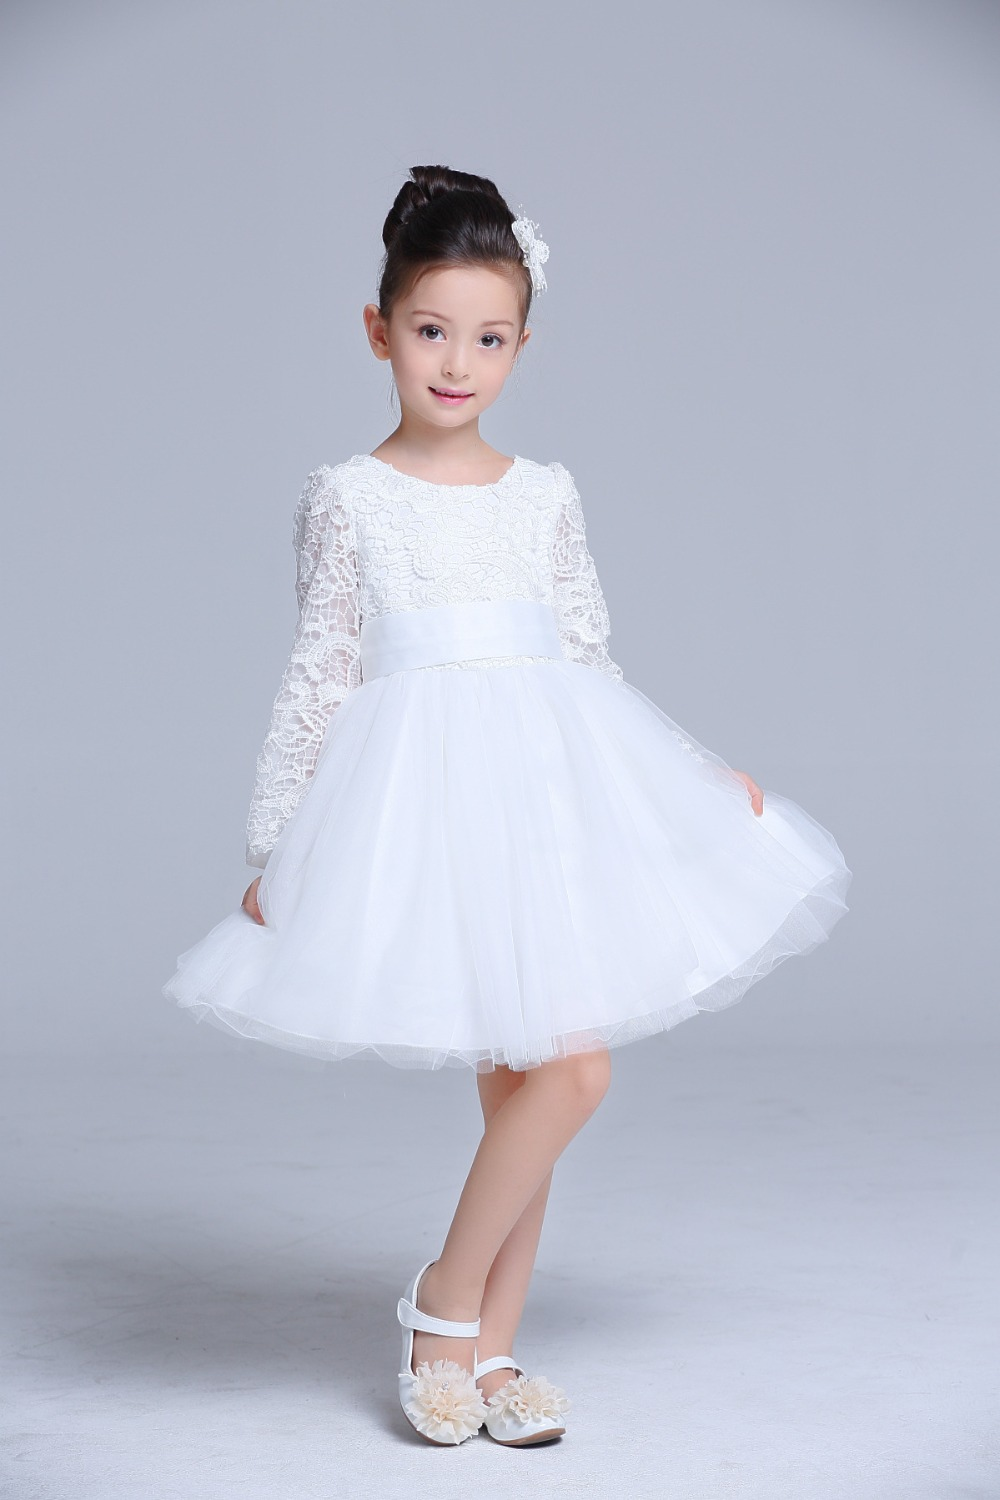 White flower girls bridesmaid dress teenager evening gown long white flower girls bridesmaid dress teenager evening gown long lace kids weeding dresses for birthday weeding party in dresses from mother kids on ombrellifo Images